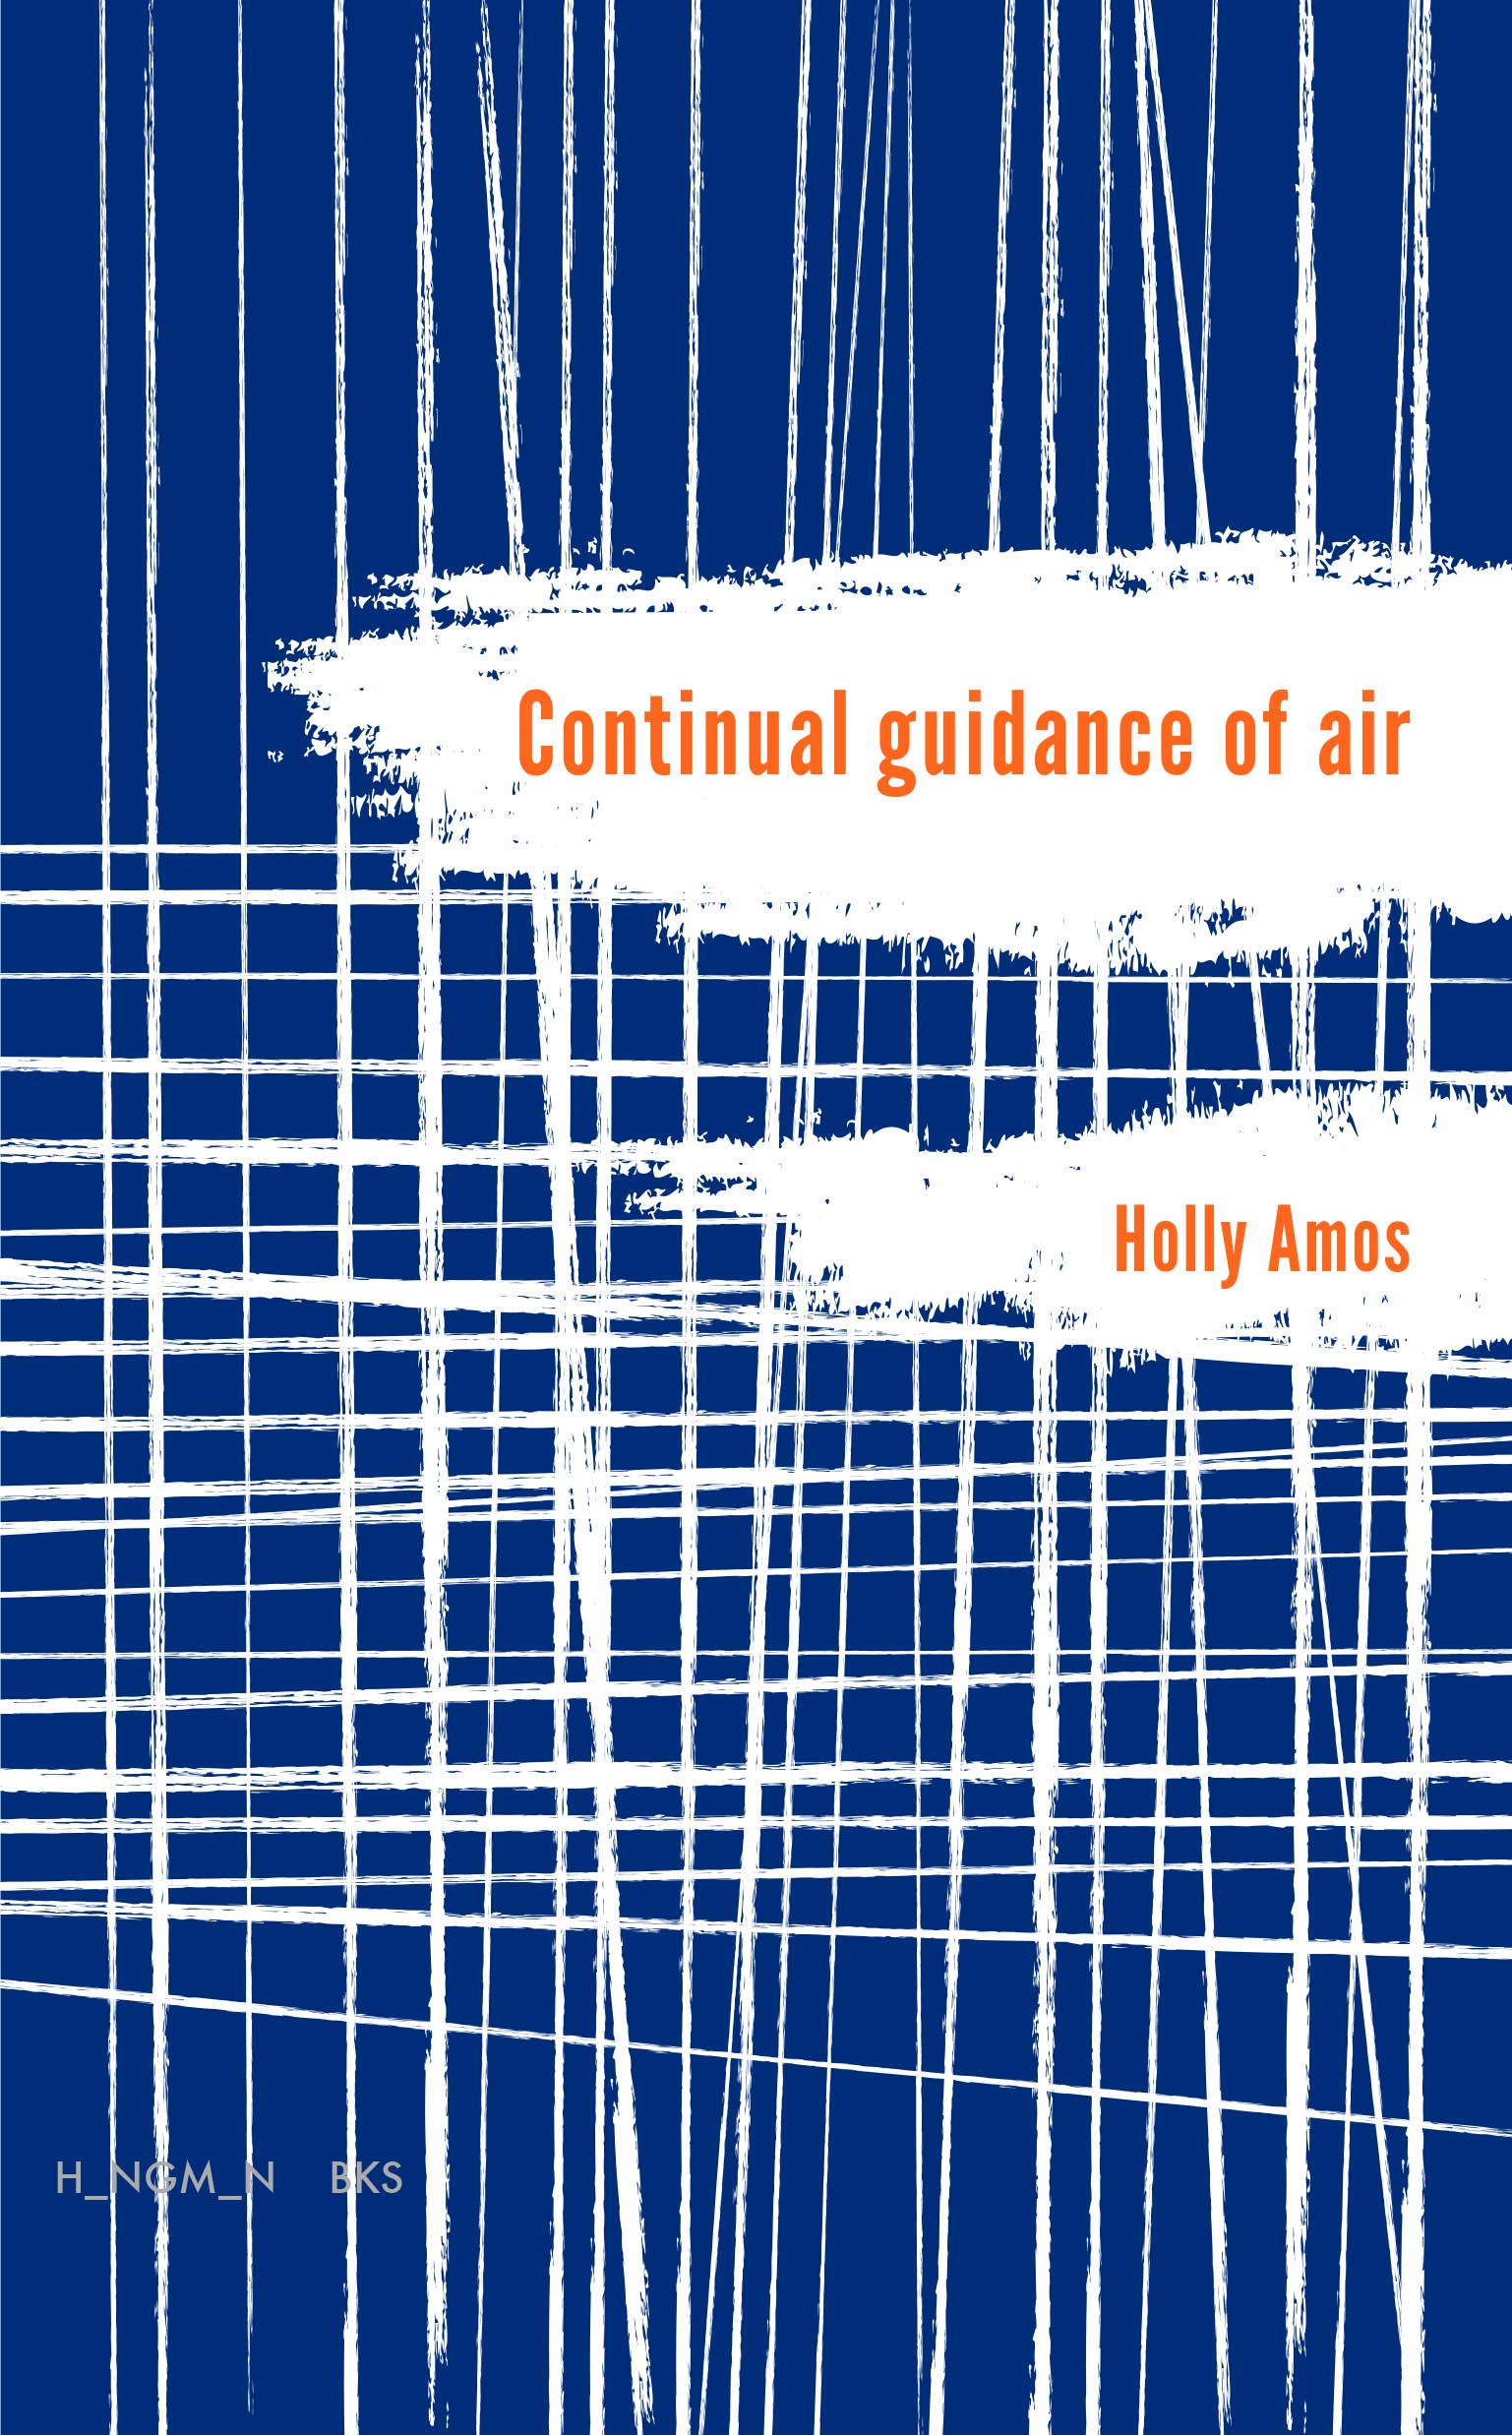 holly amos cover 2